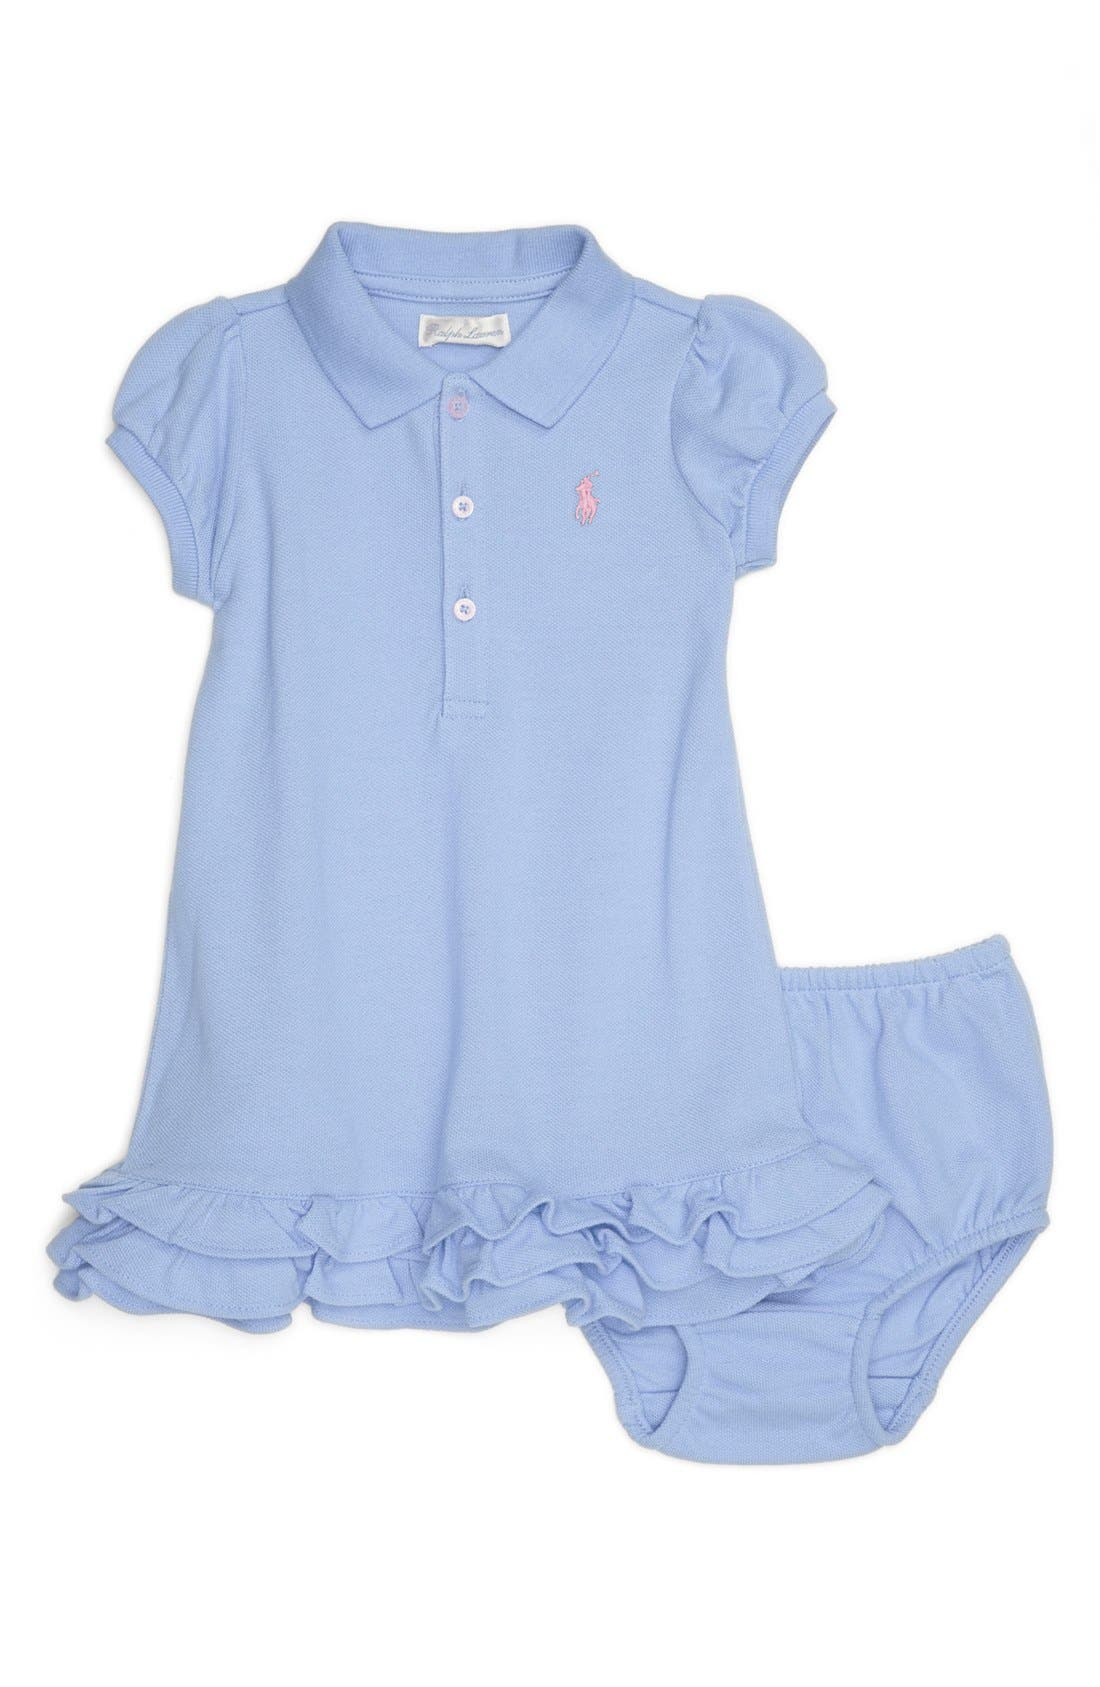 Alternate Image 1 Selected - Ralph Lauren Polo Dress & Bloomers (Baby Girls)